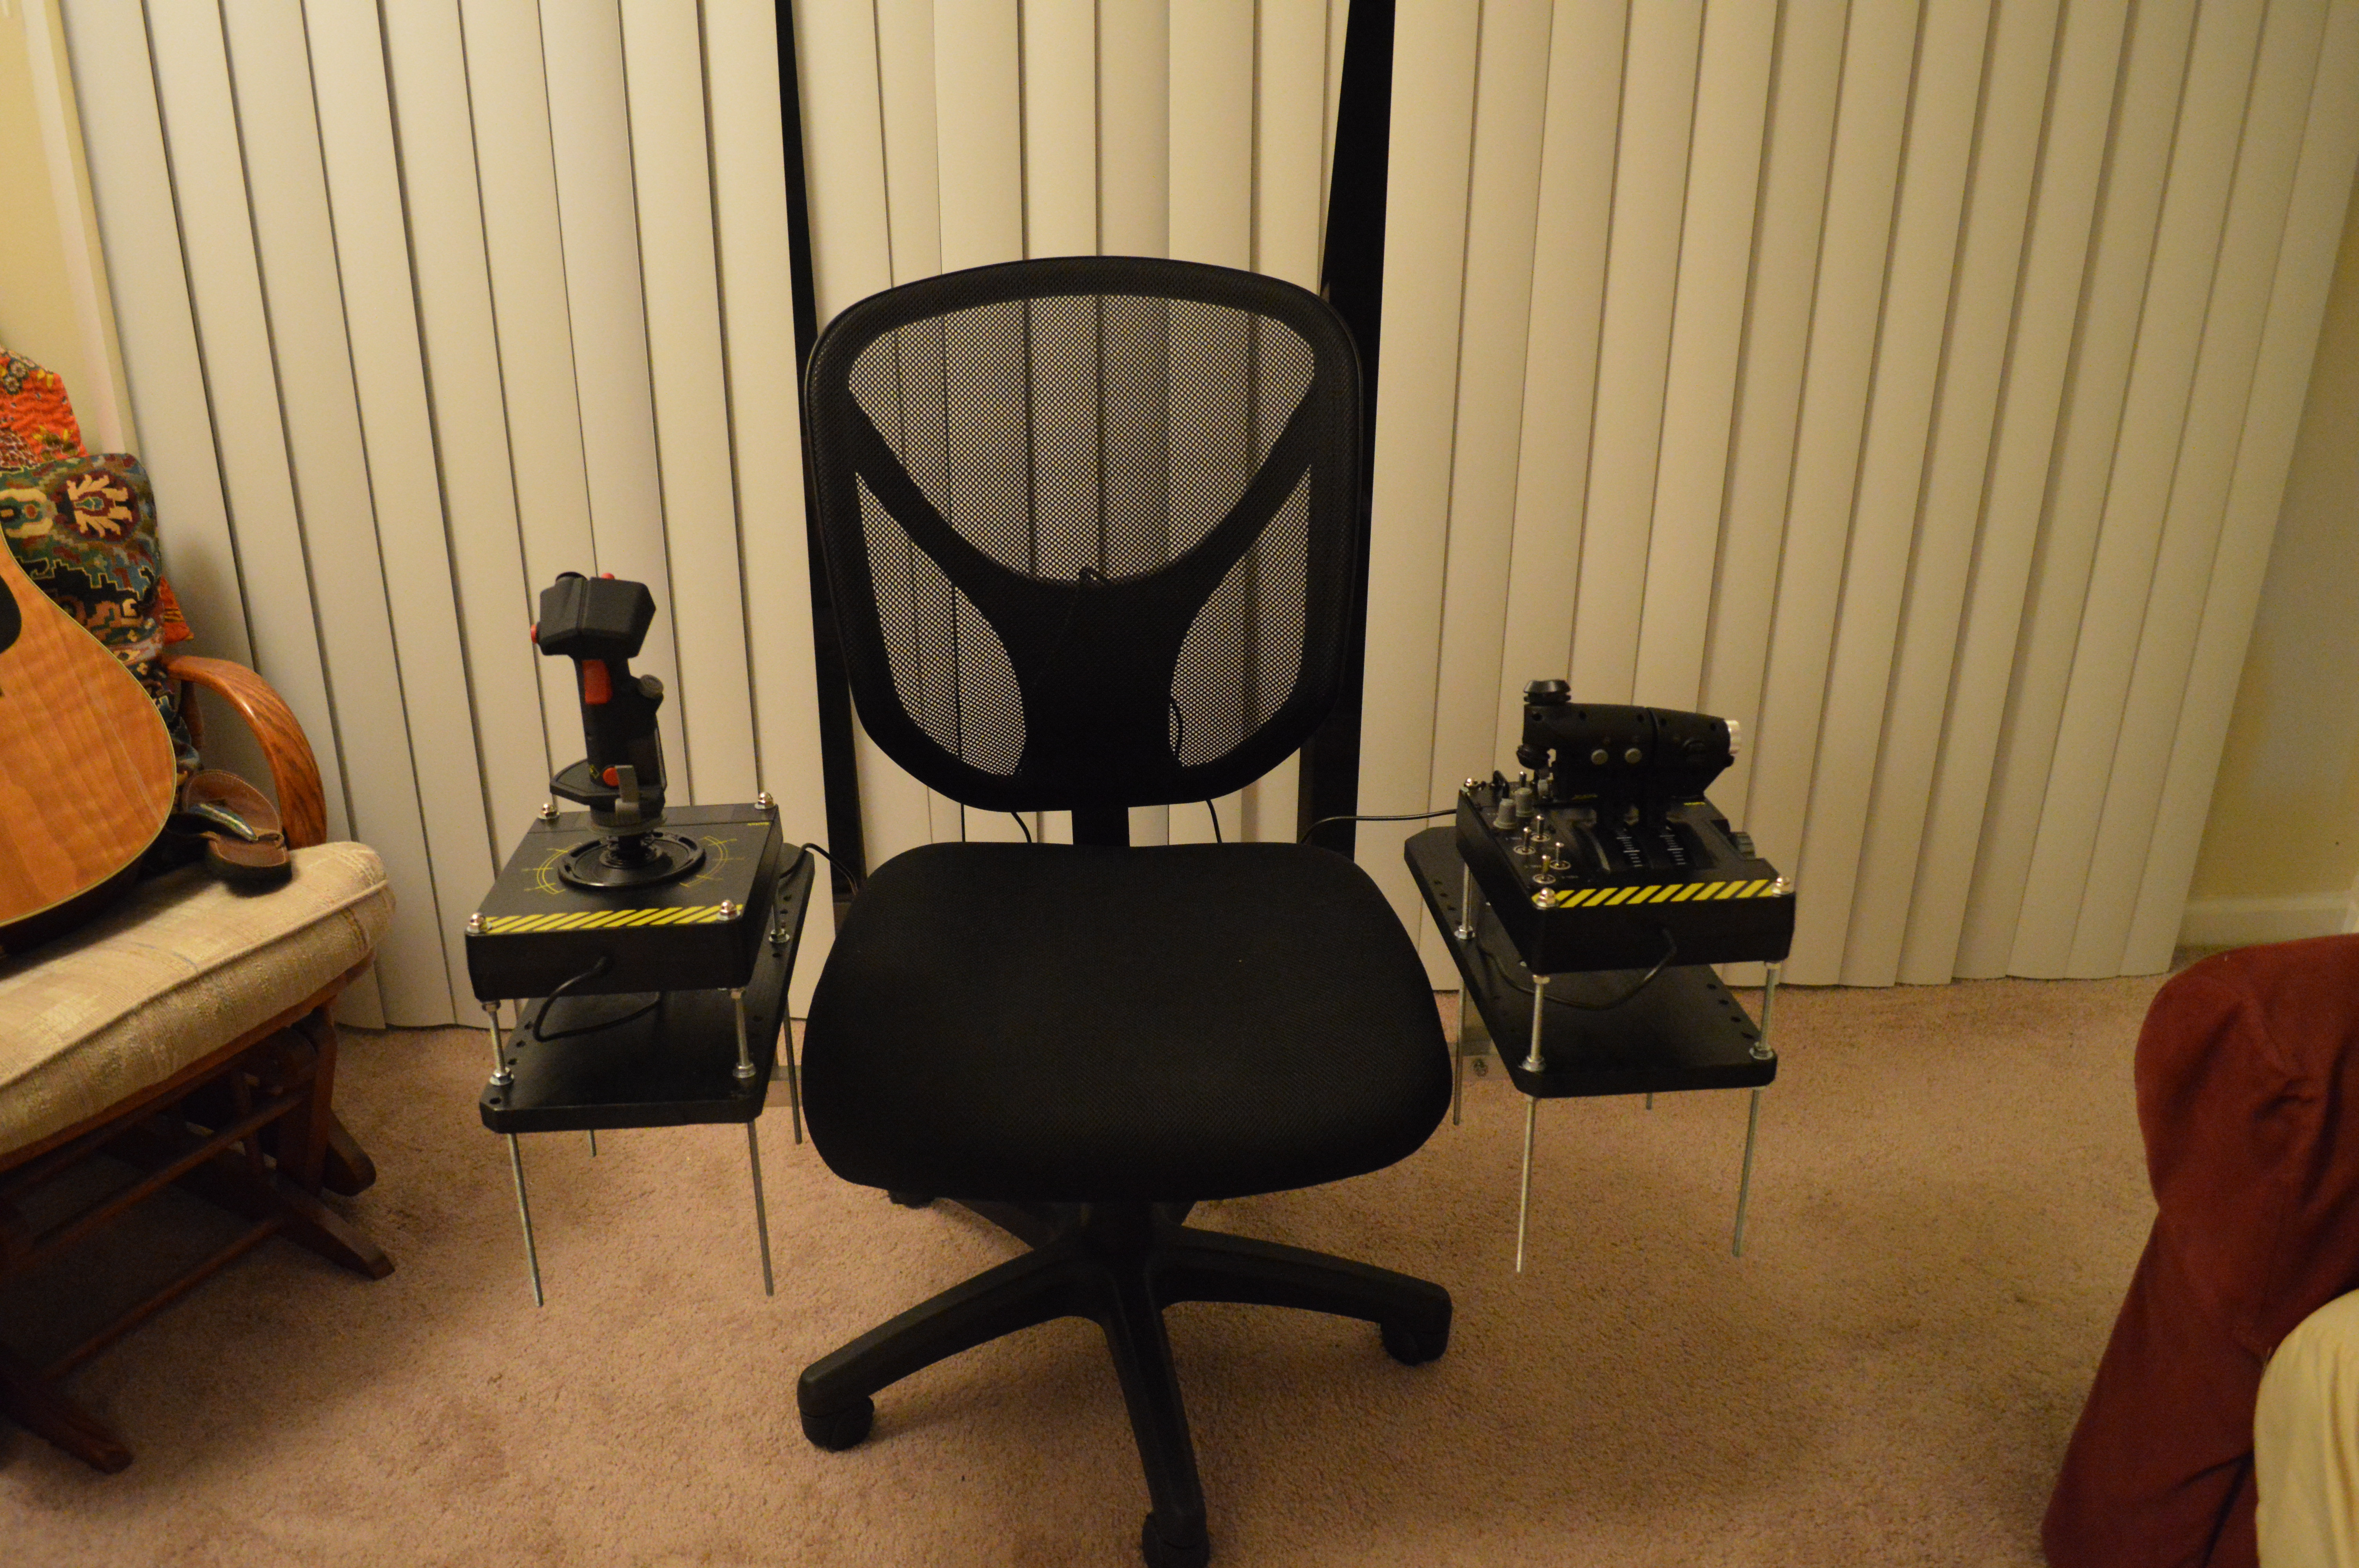 Best ideas about DIY Gaming Chair Plans . Save or Pin DIY HOTAS Chair – Grimmash on Gaming Now.